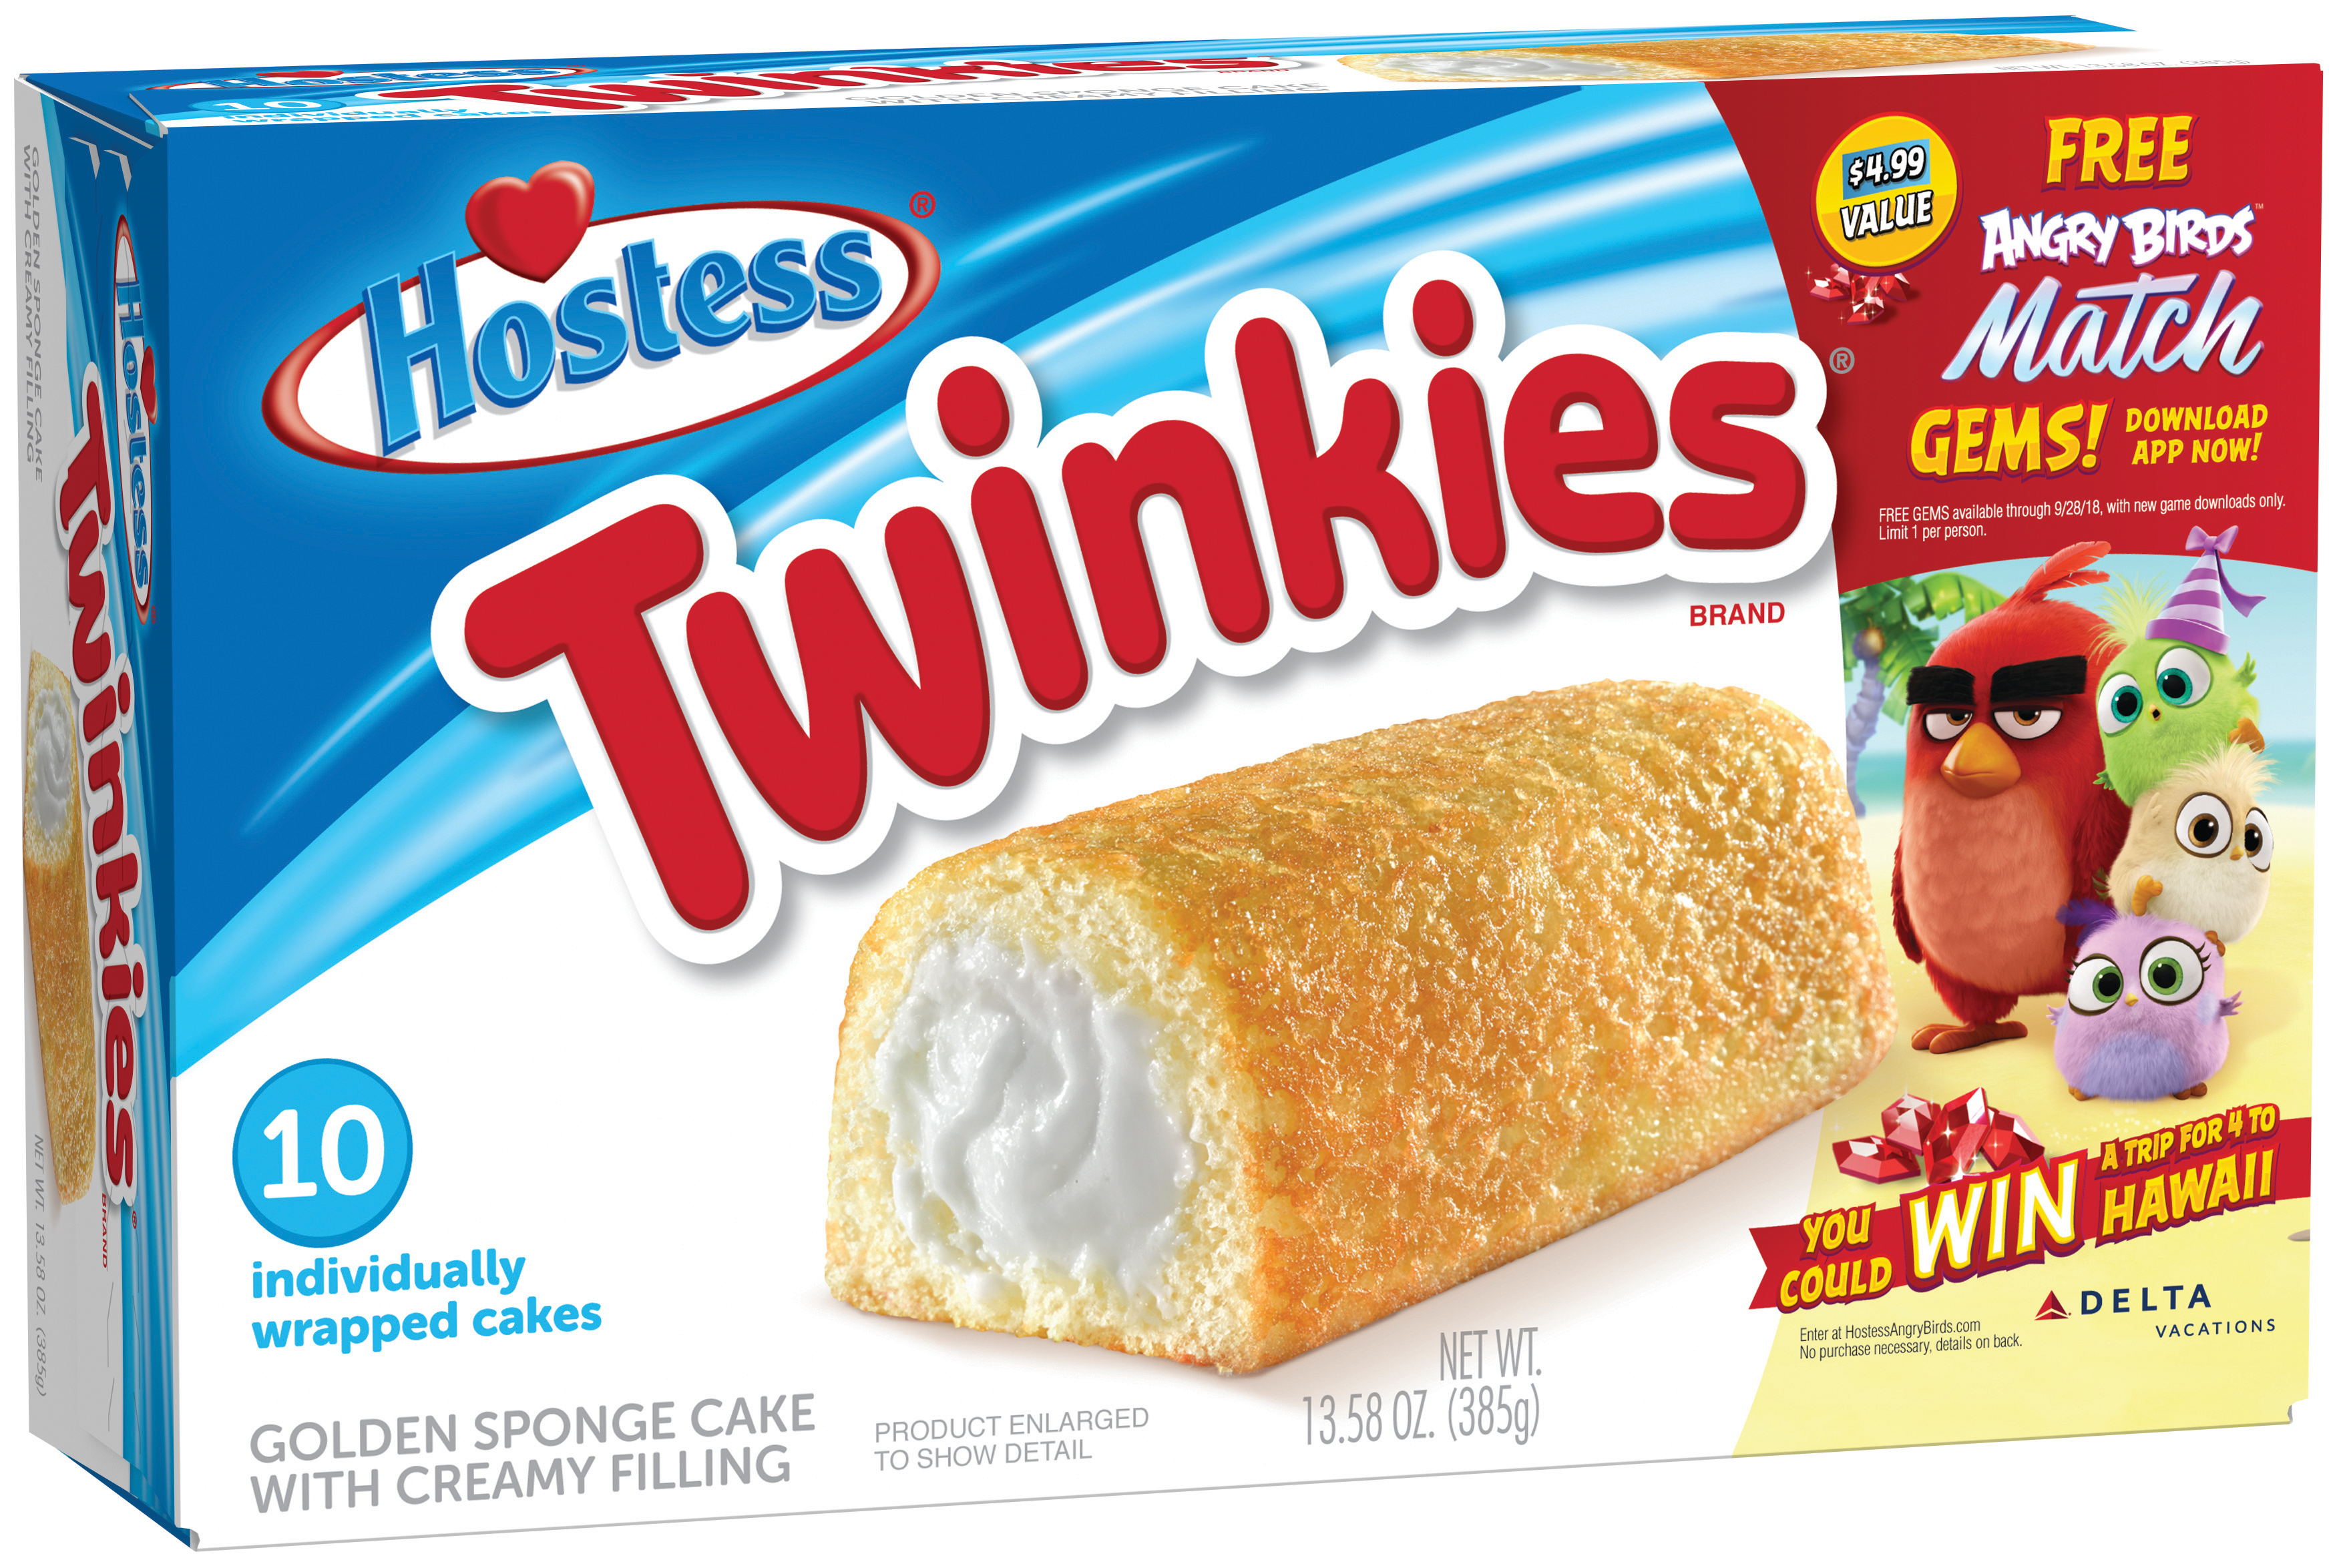 Hostess Brands Takes Flight with Angry Birds™ Promotion and